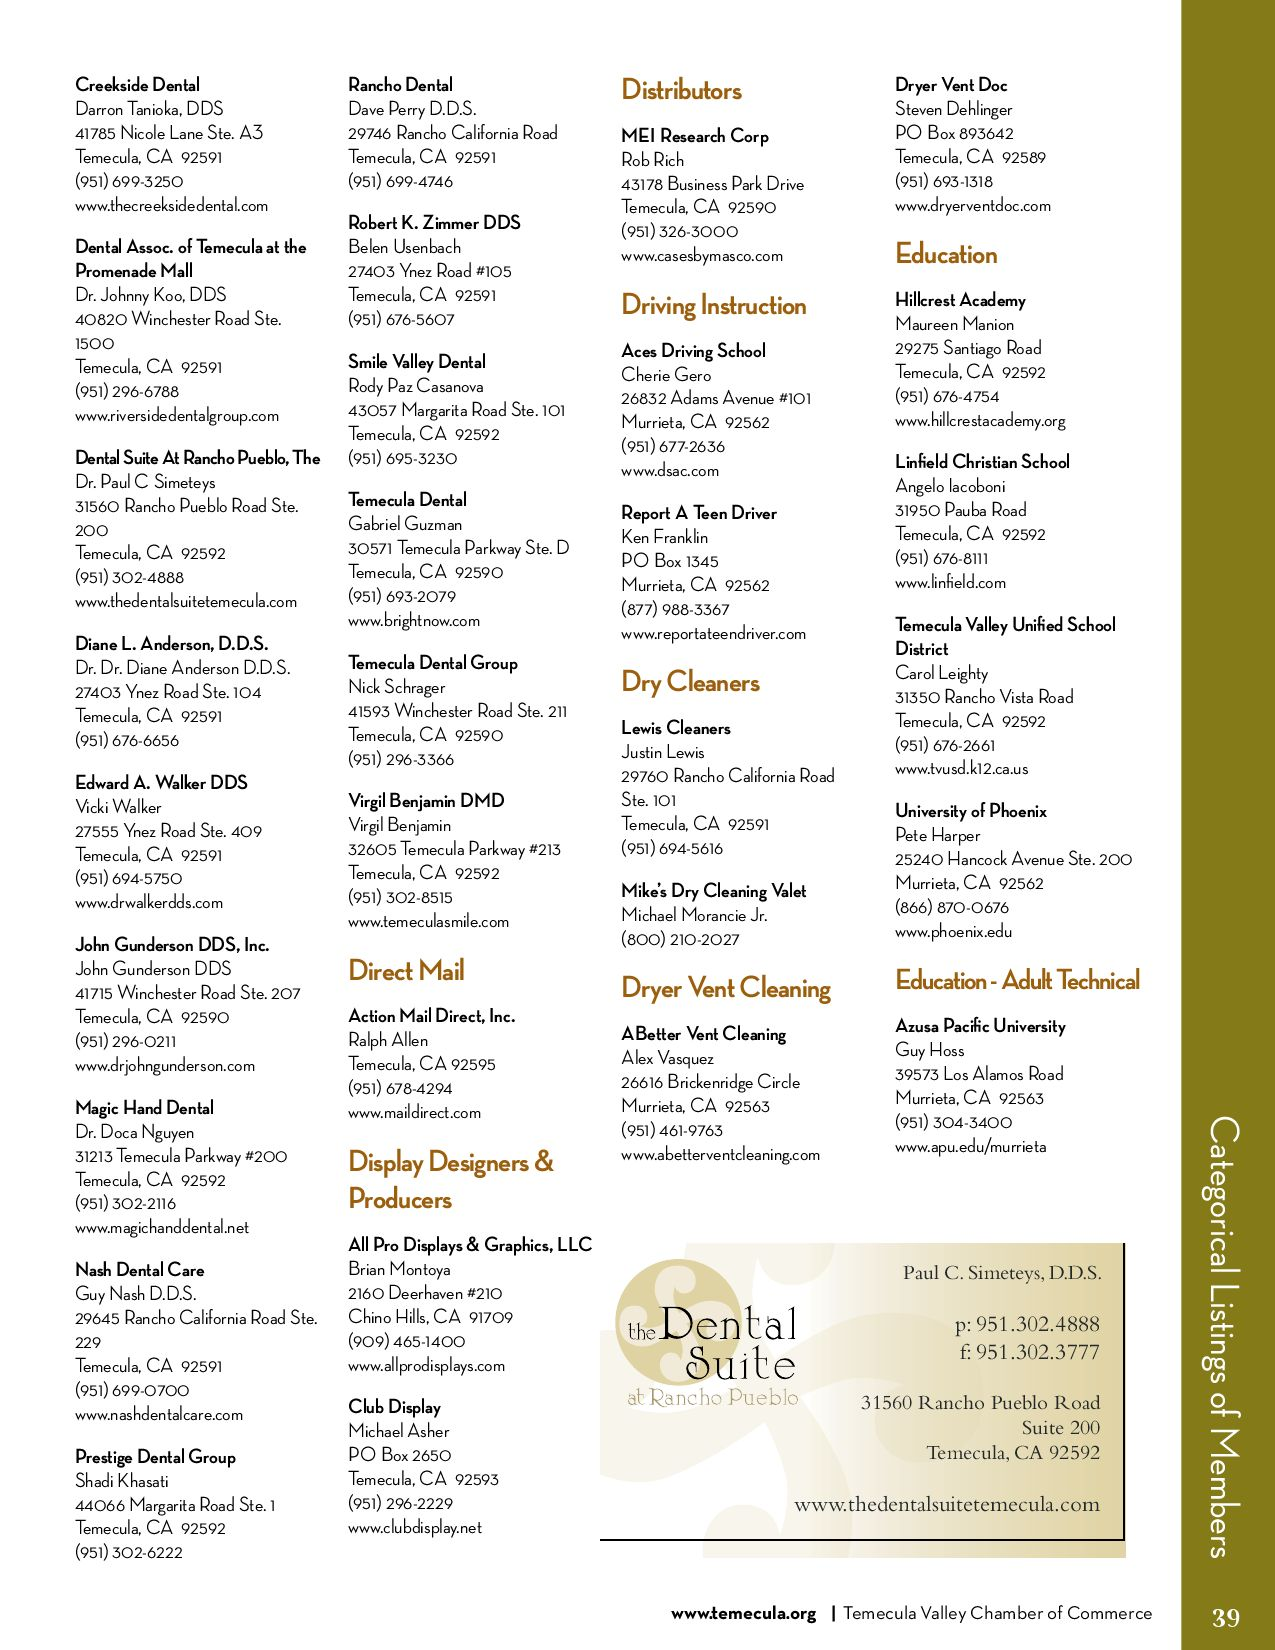 Temecula Valley Chamber Of Commerce Business Resource Guide By